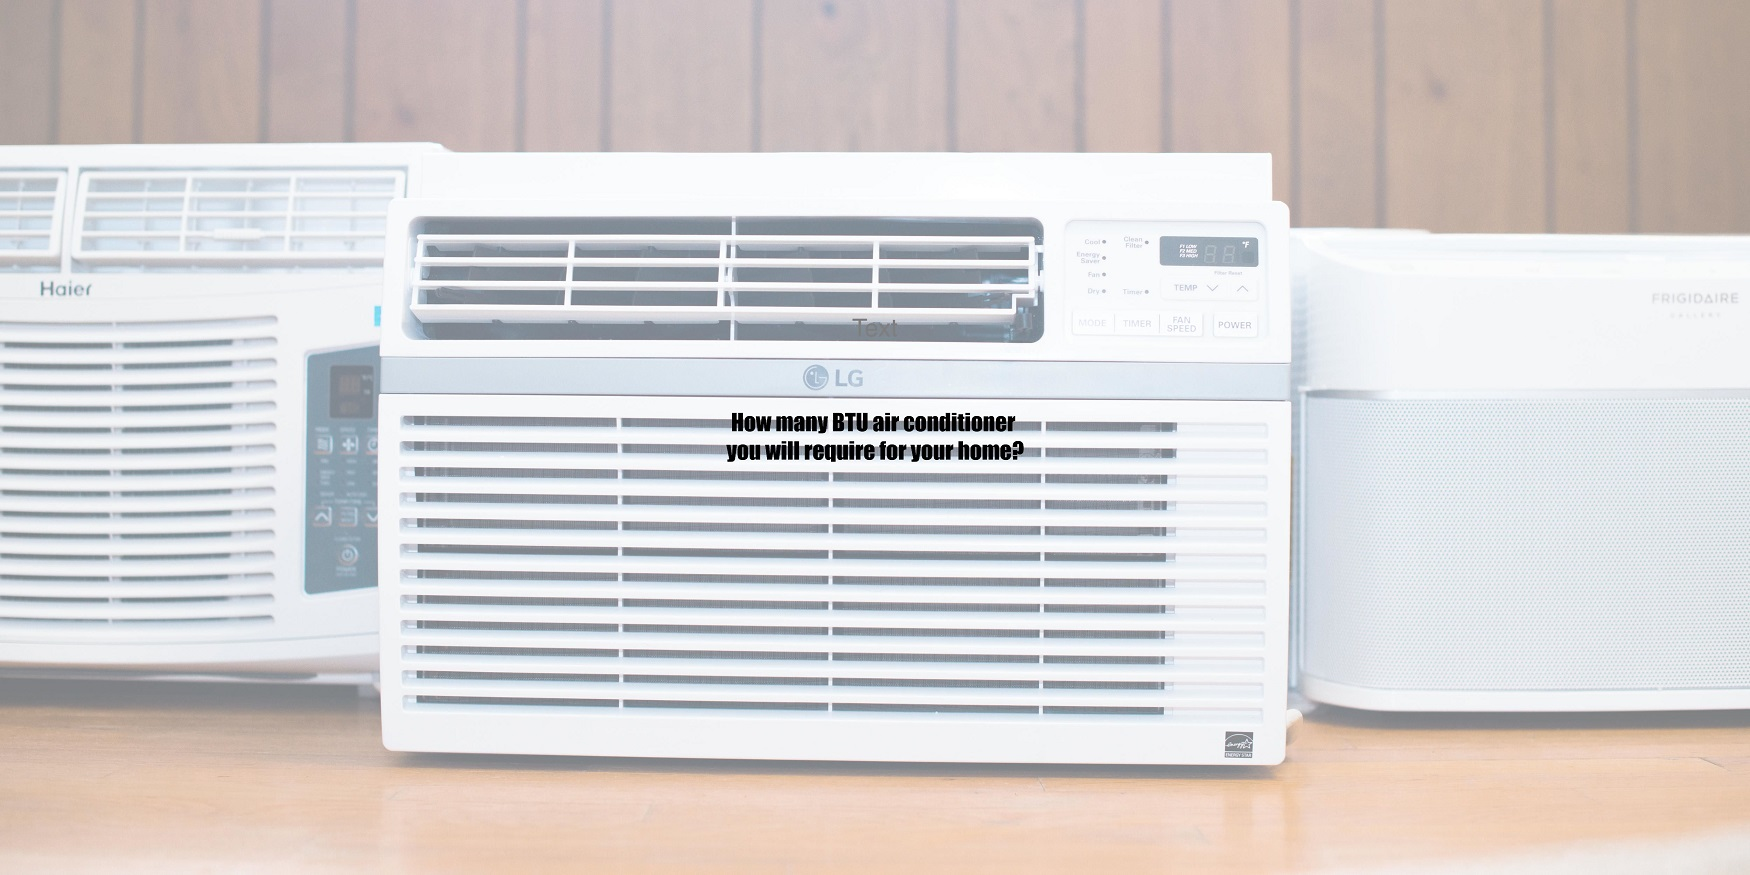 How many BTU air conditioner you will require for your home?